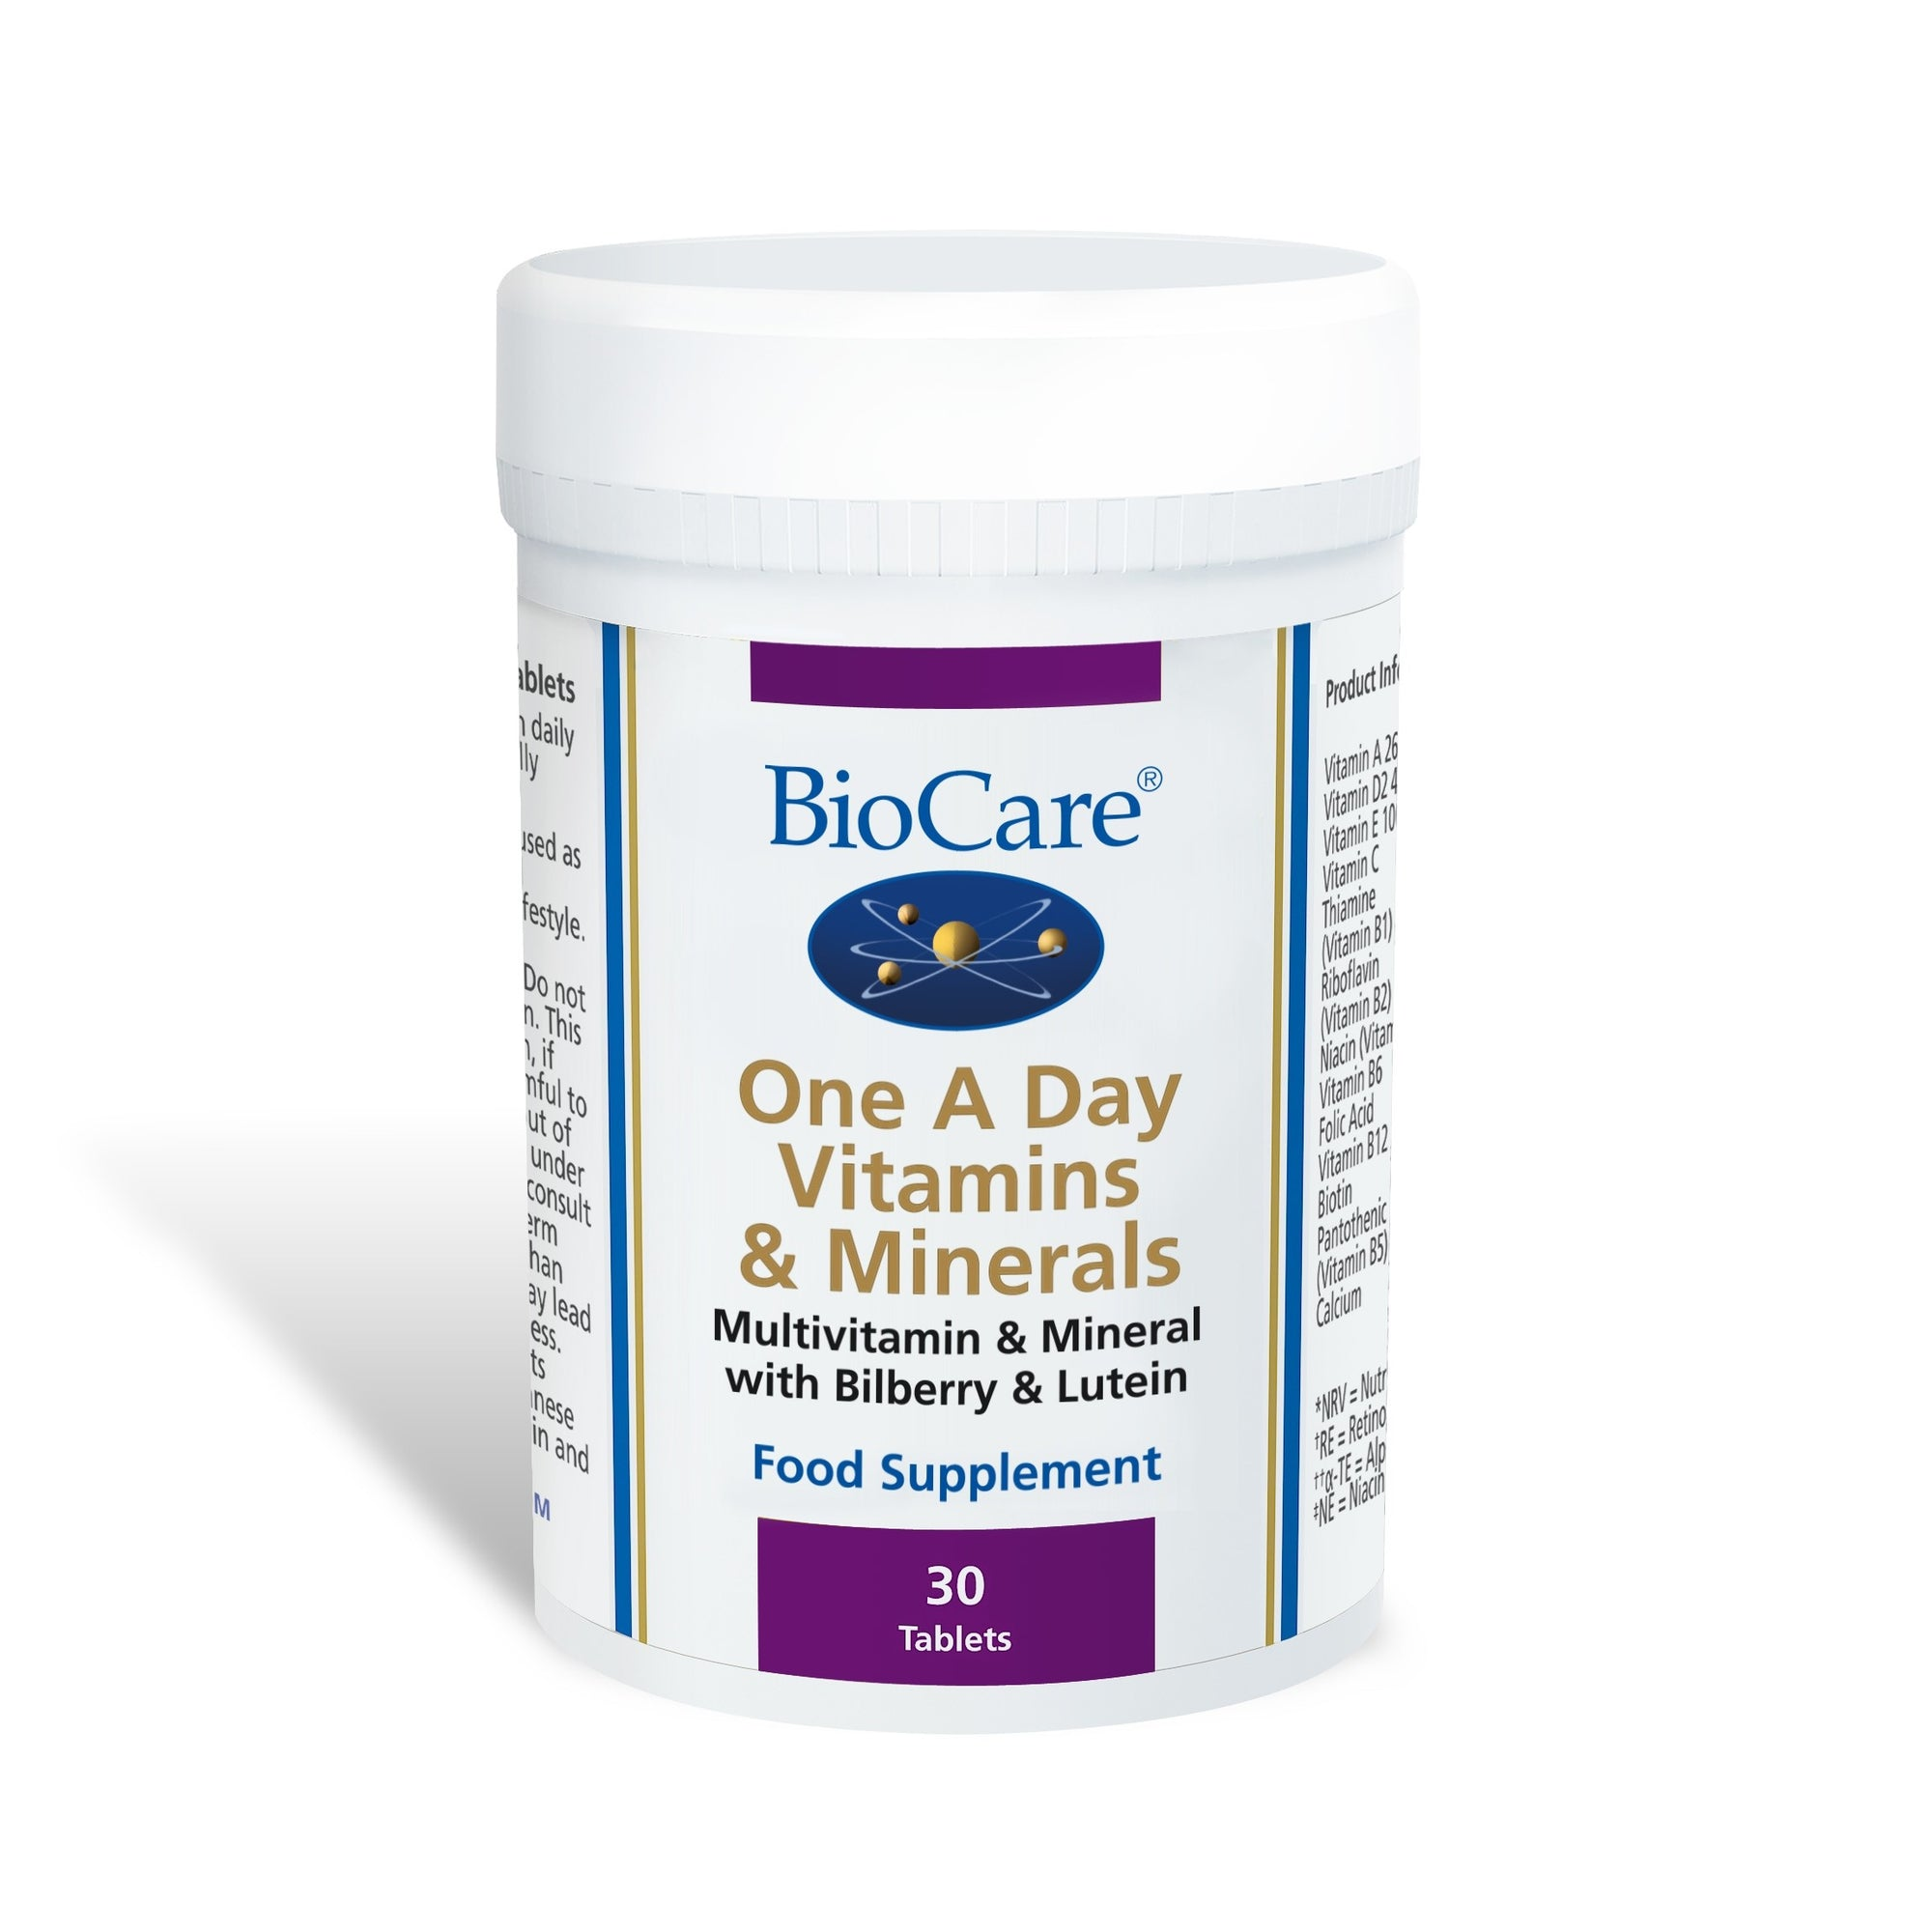 BioCare One A Day Vitamins & Minerals 30 Tablets